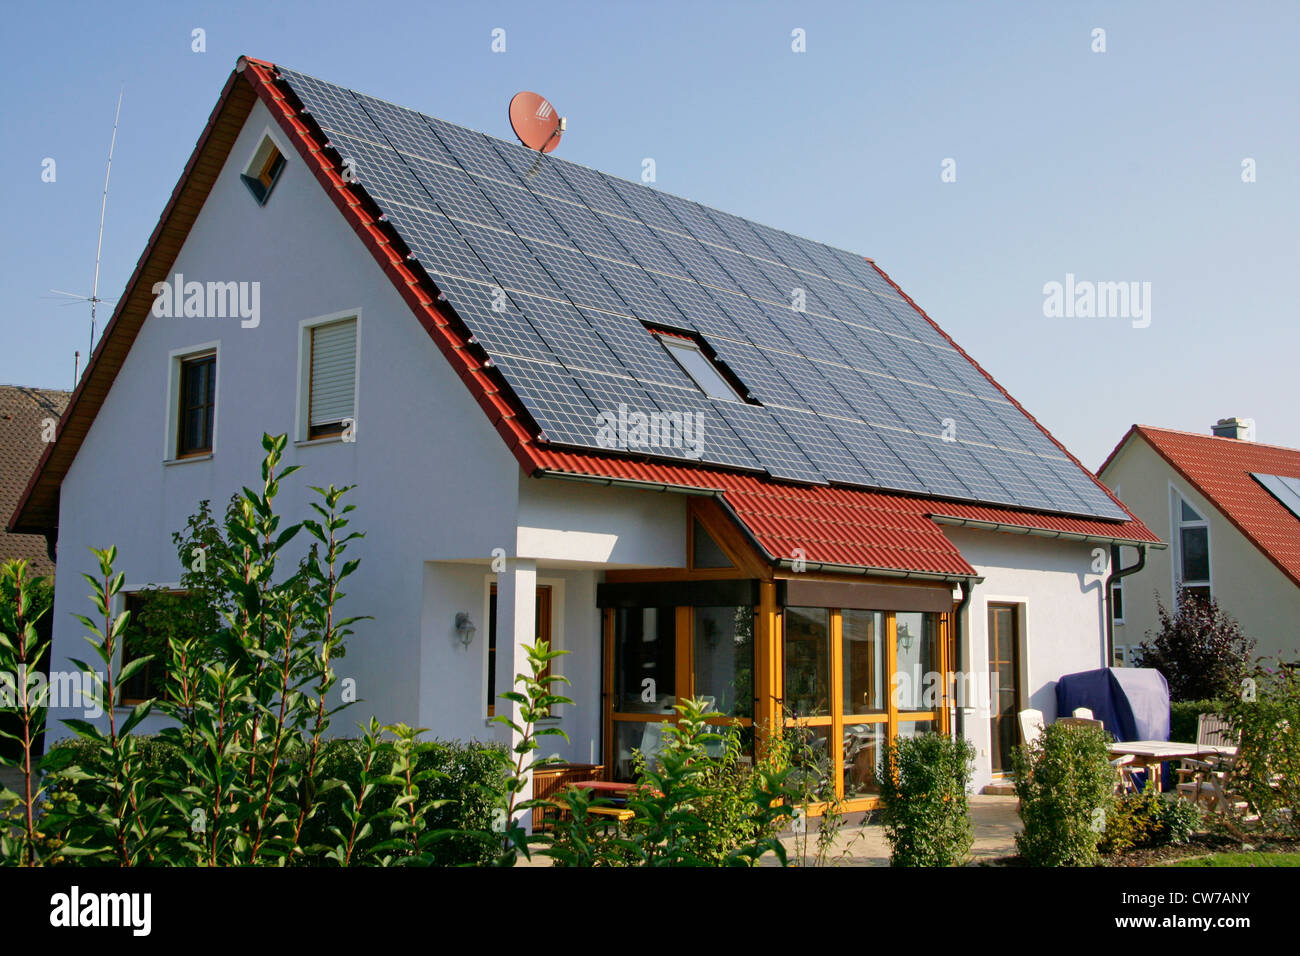 house with photovoltaic on the roof, Germany, Bavaria, Eckersdorf - Stock Image